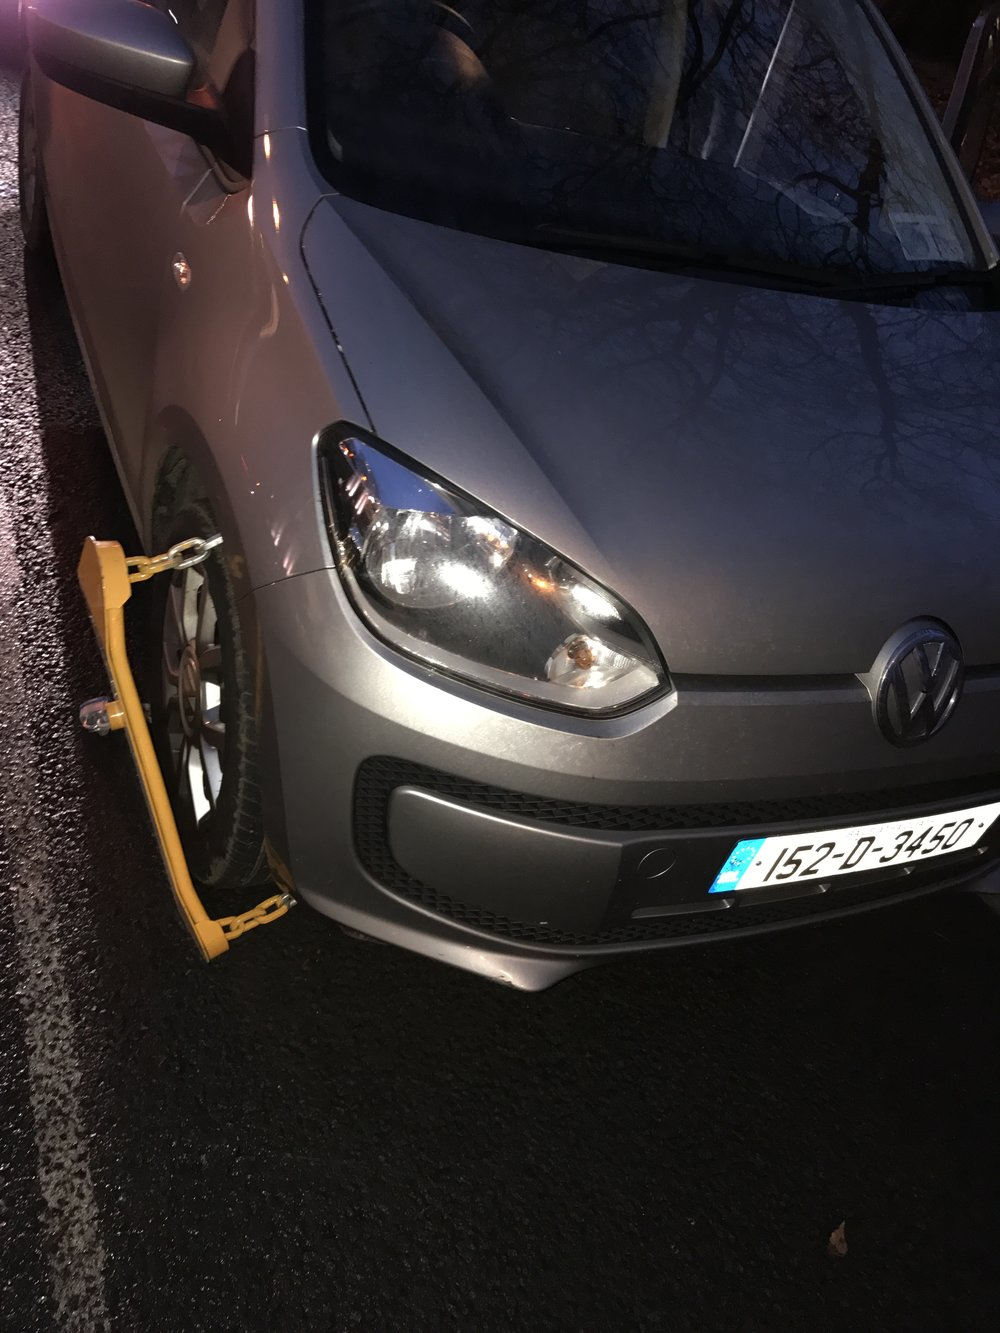 Getting booted in Dublin is easily avoidable, but easily rectified as it is commonplace.